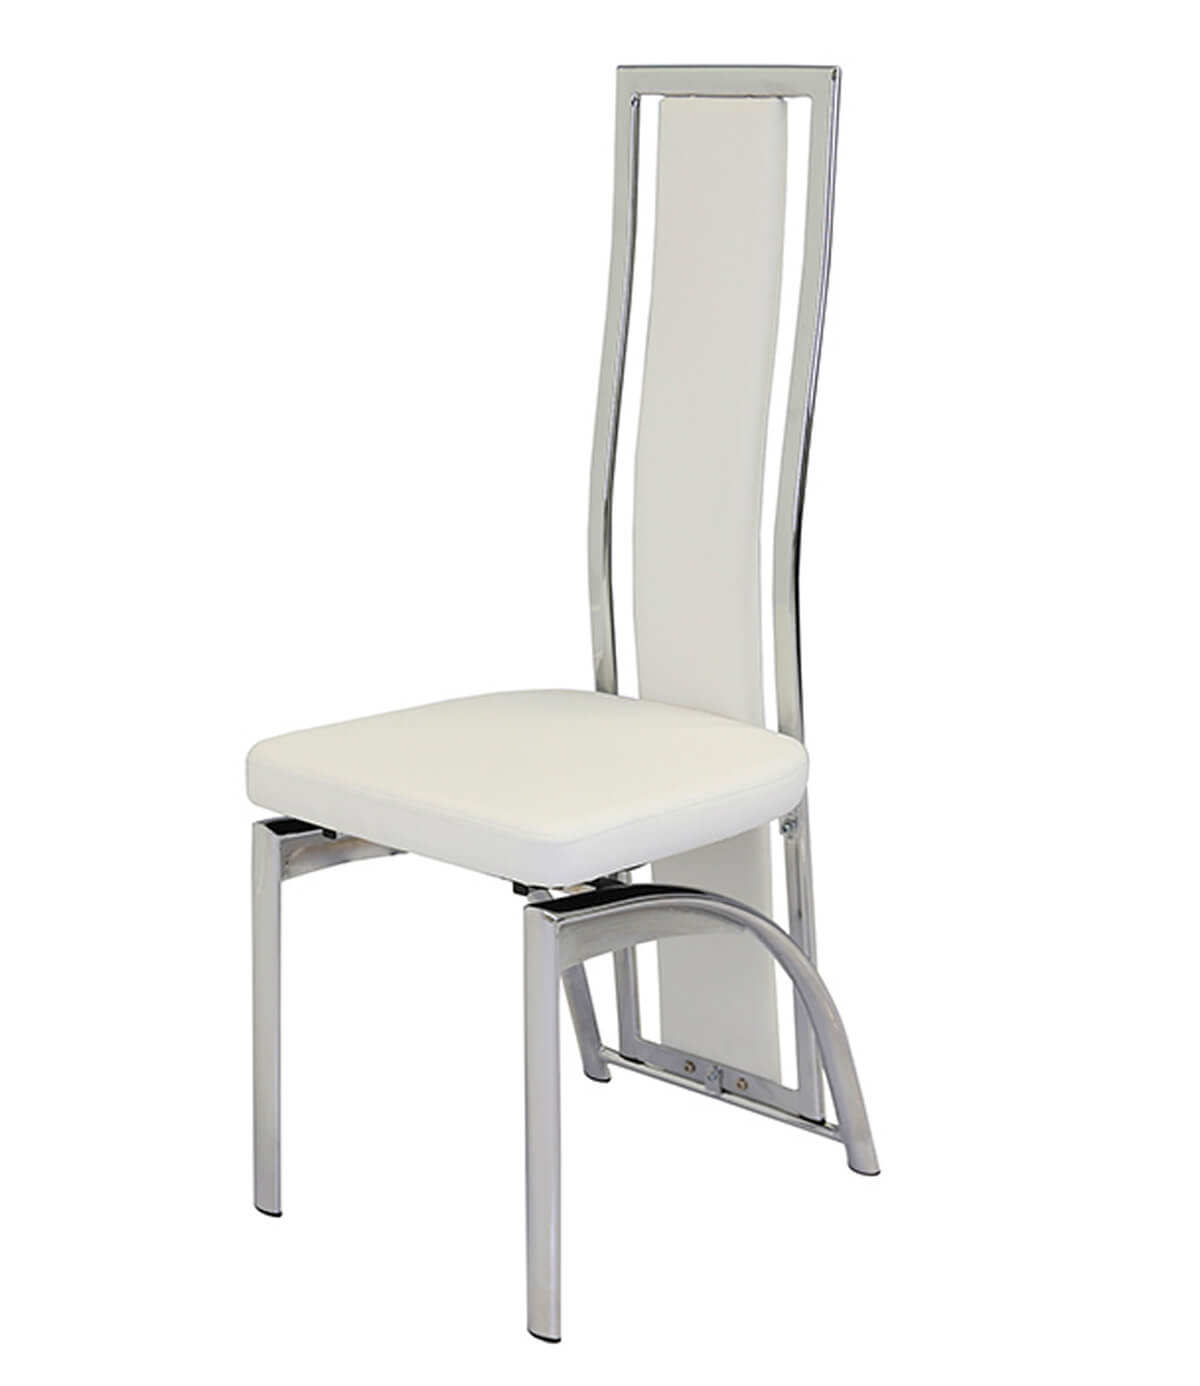 chrome dining chairs uk monkey potty chair manchester furniture supplies